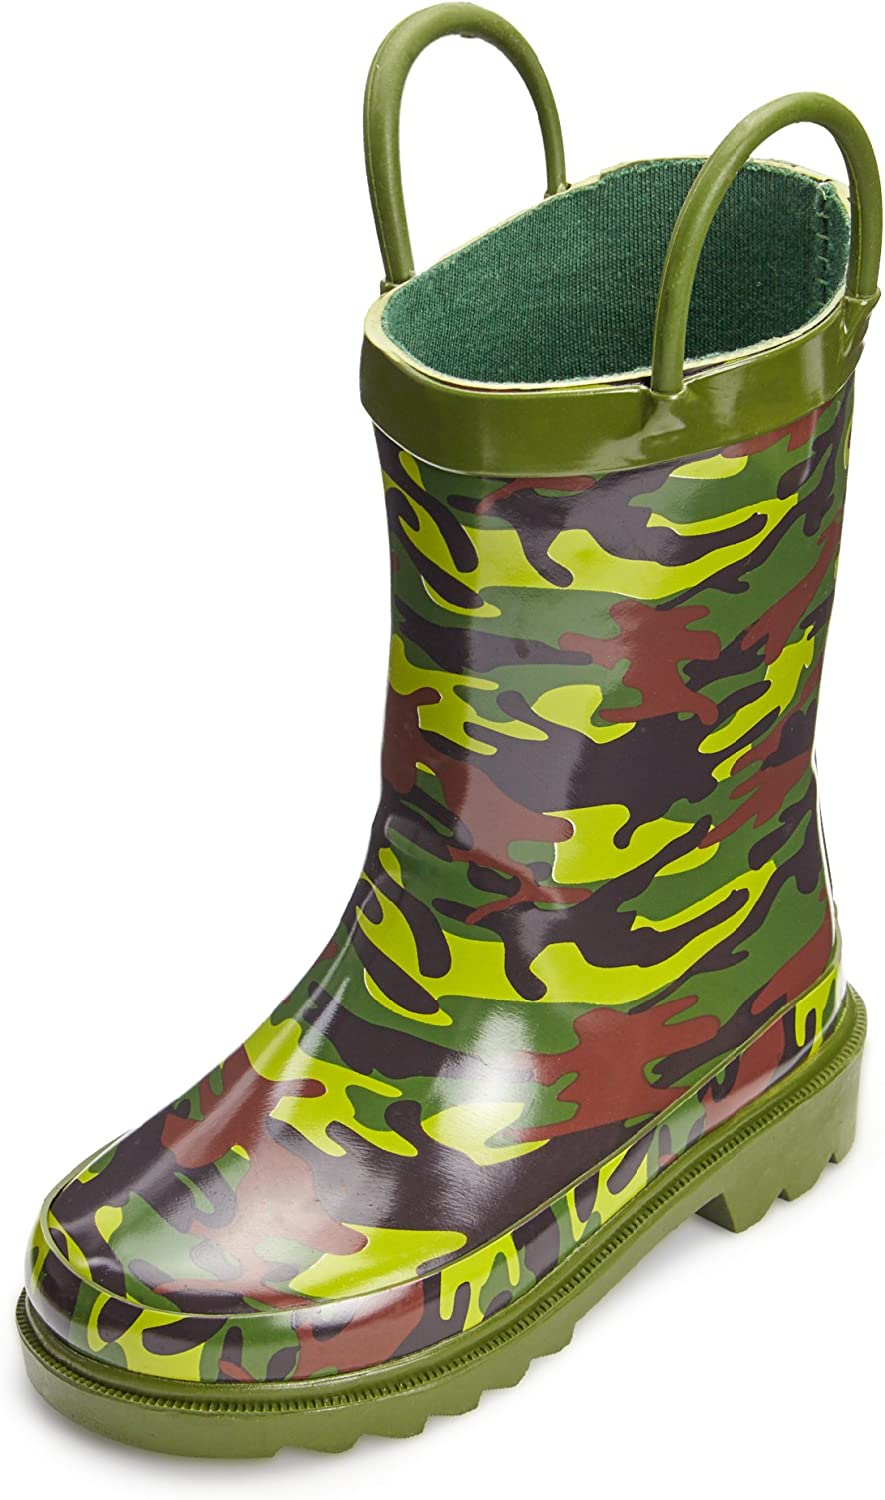 Puddle Play Toddler and Kids Cheap SALE Start Boots Max 52% OFF Rubber Easy-O Rain Waterproof